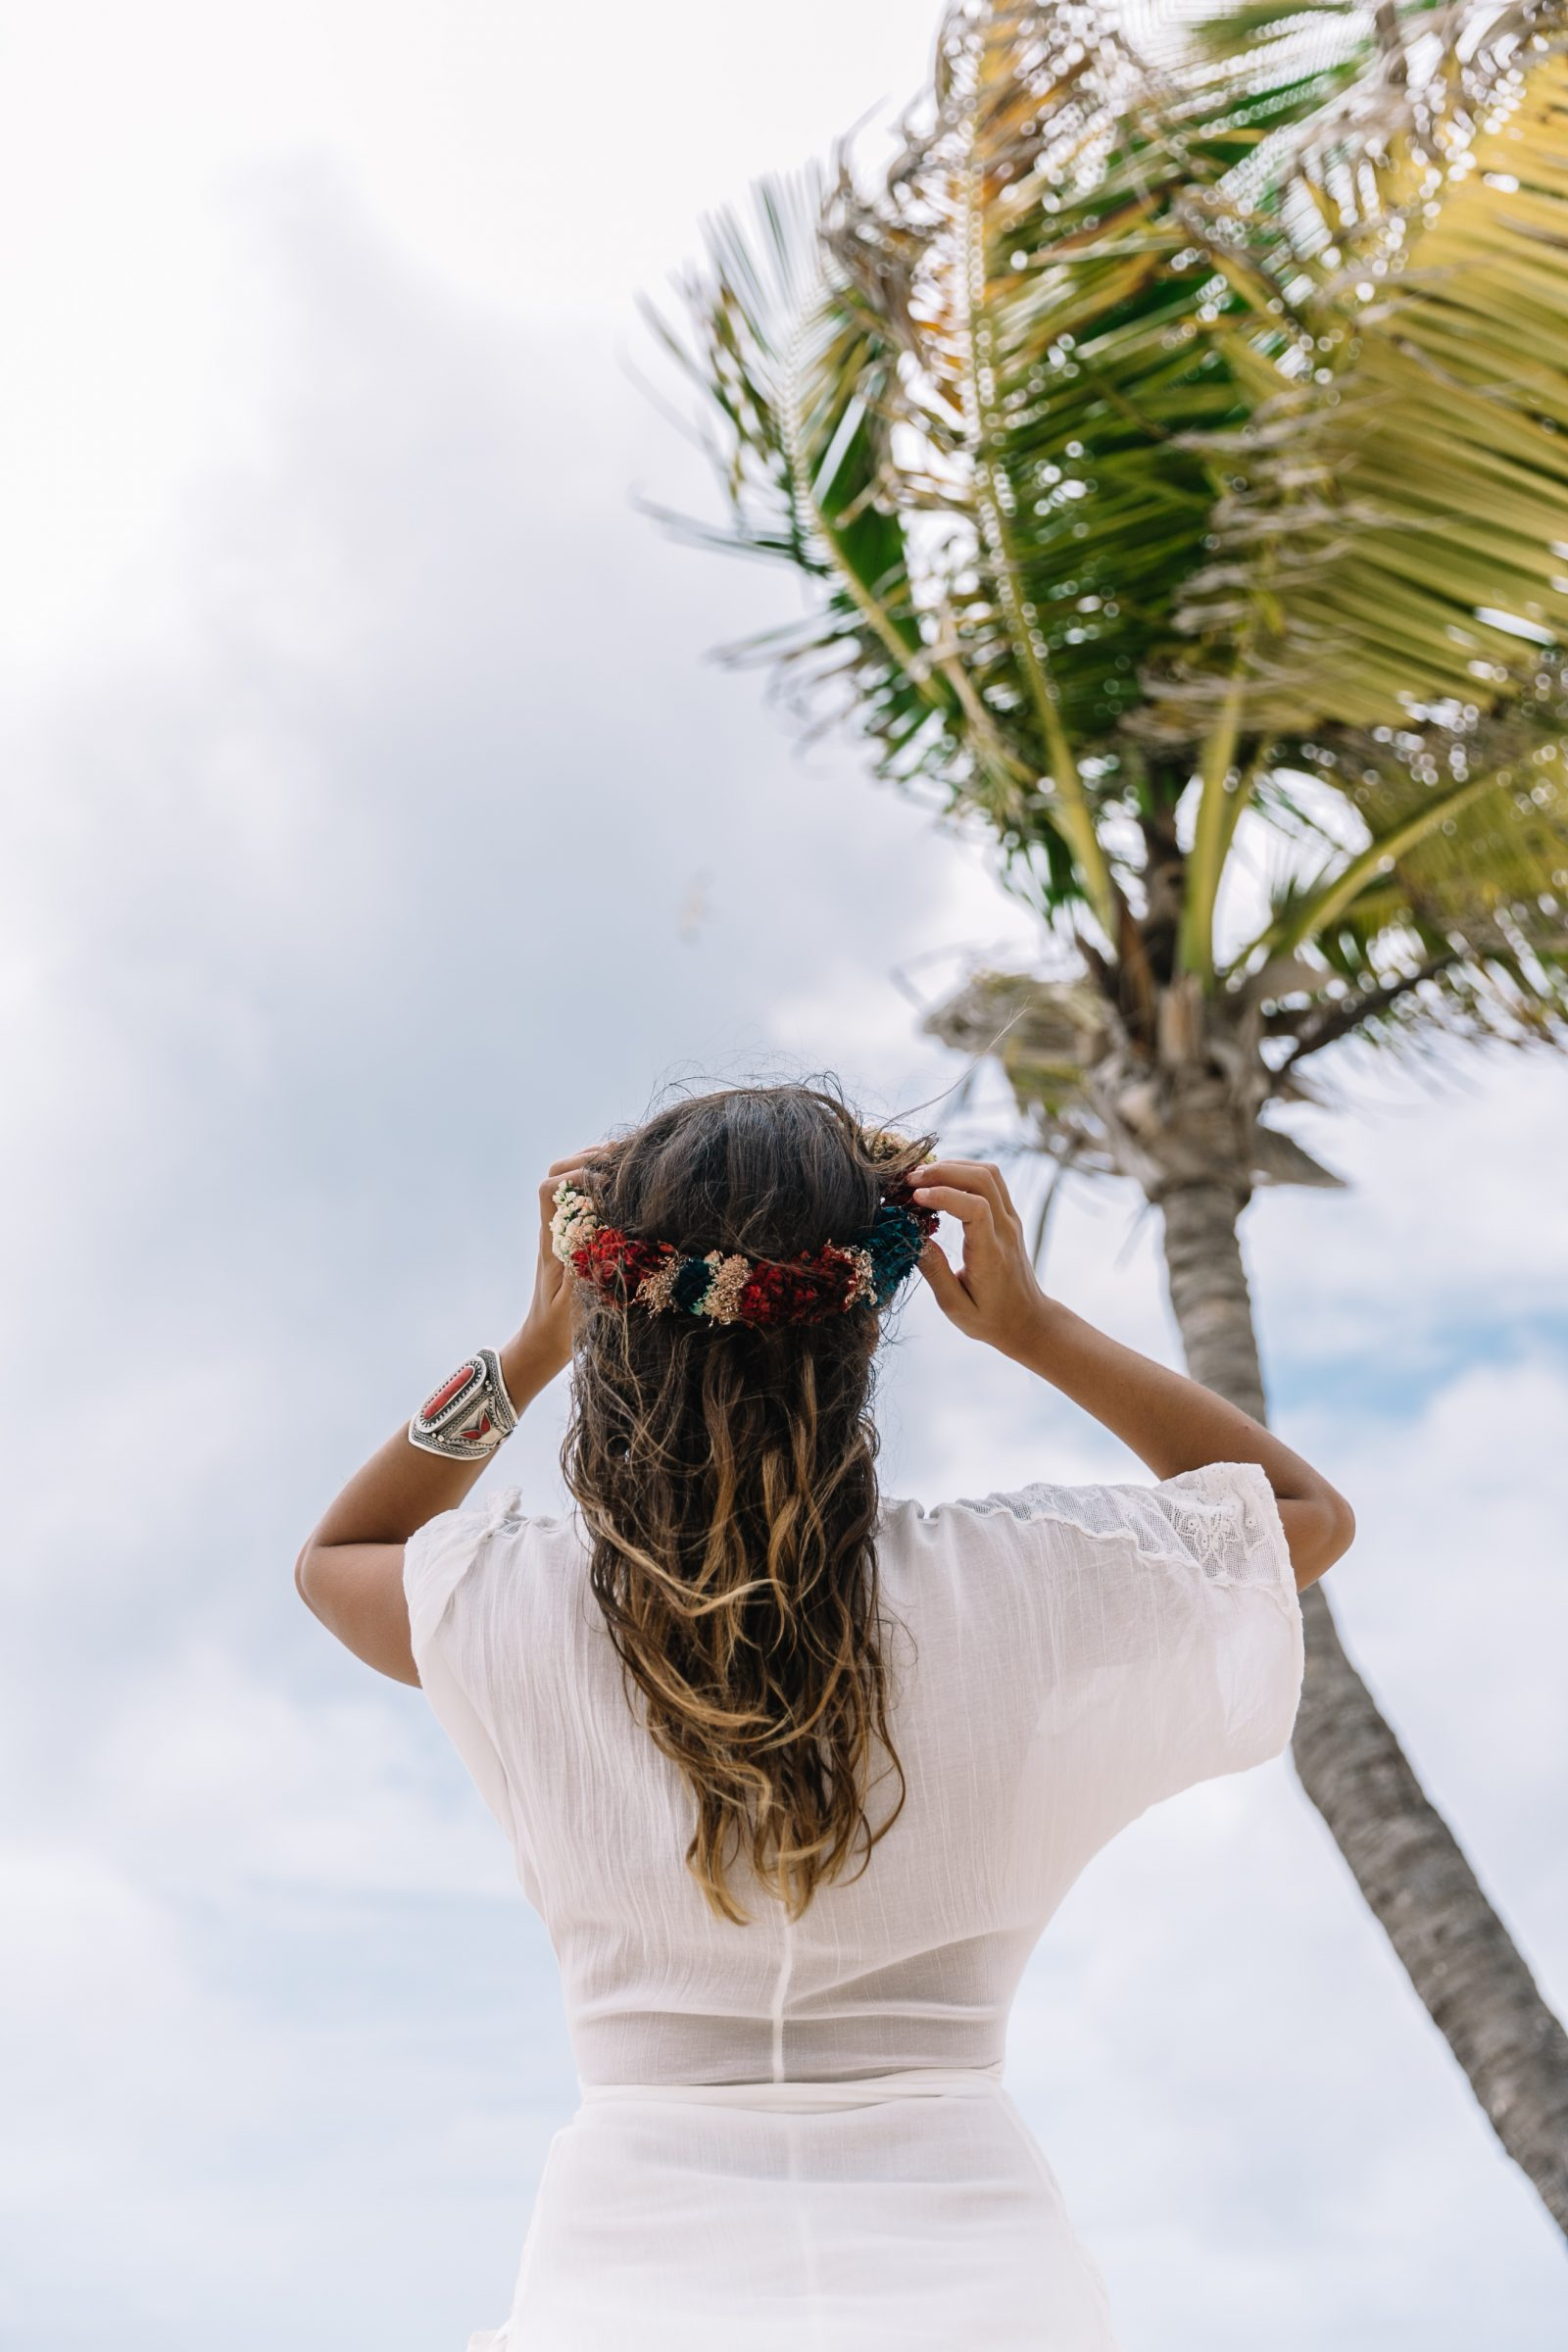 white_long_dress-boho_style-tulum_mexico-beach-floral_crown-outfit-collage_vintage-33